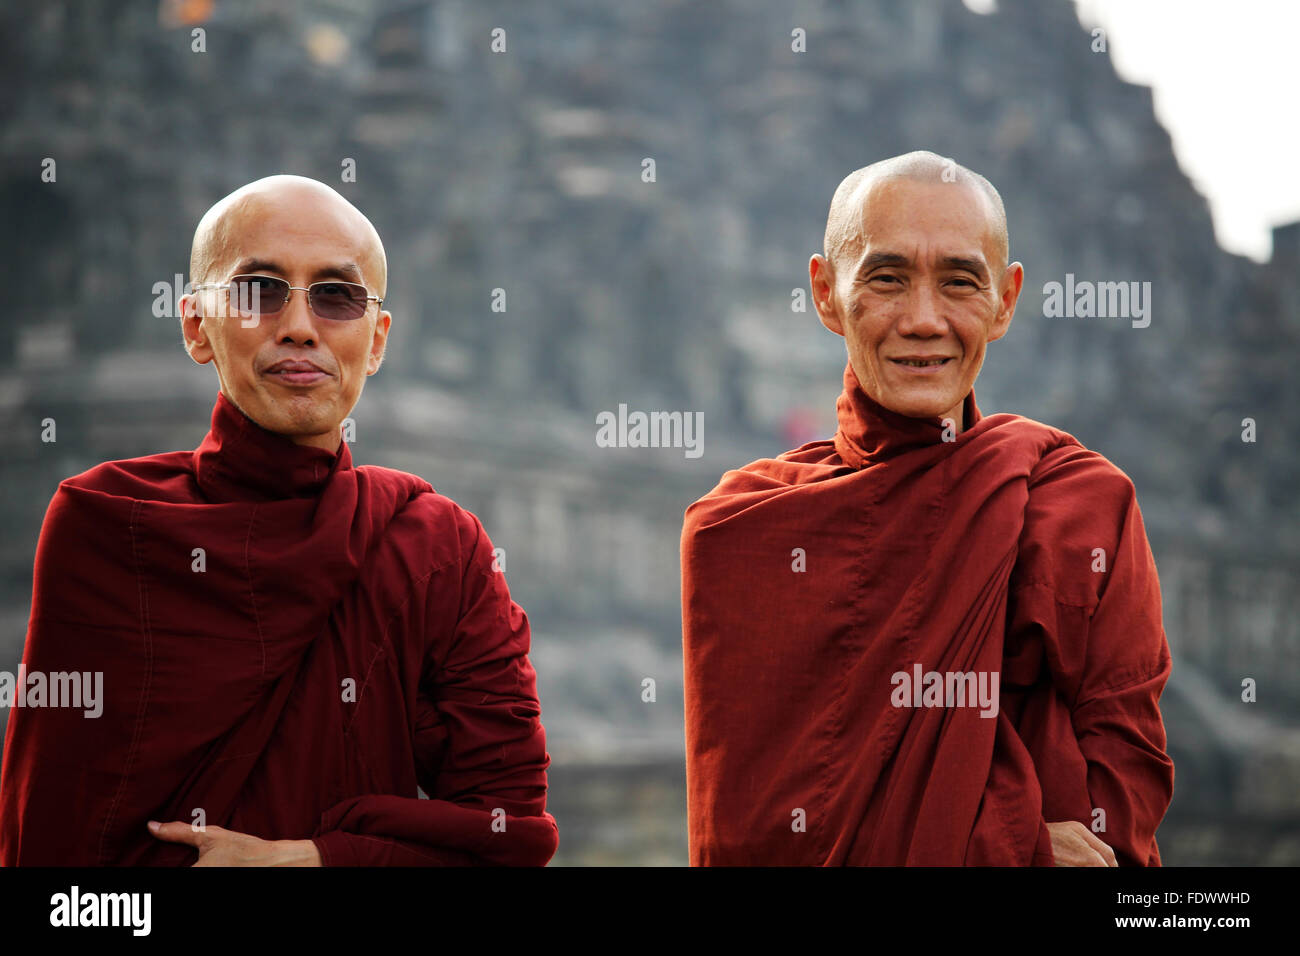 Portrait of two buddhist monks posing in front of  Borobudur Buddhist temple complex in Central Java, Indonesia - Stock Image